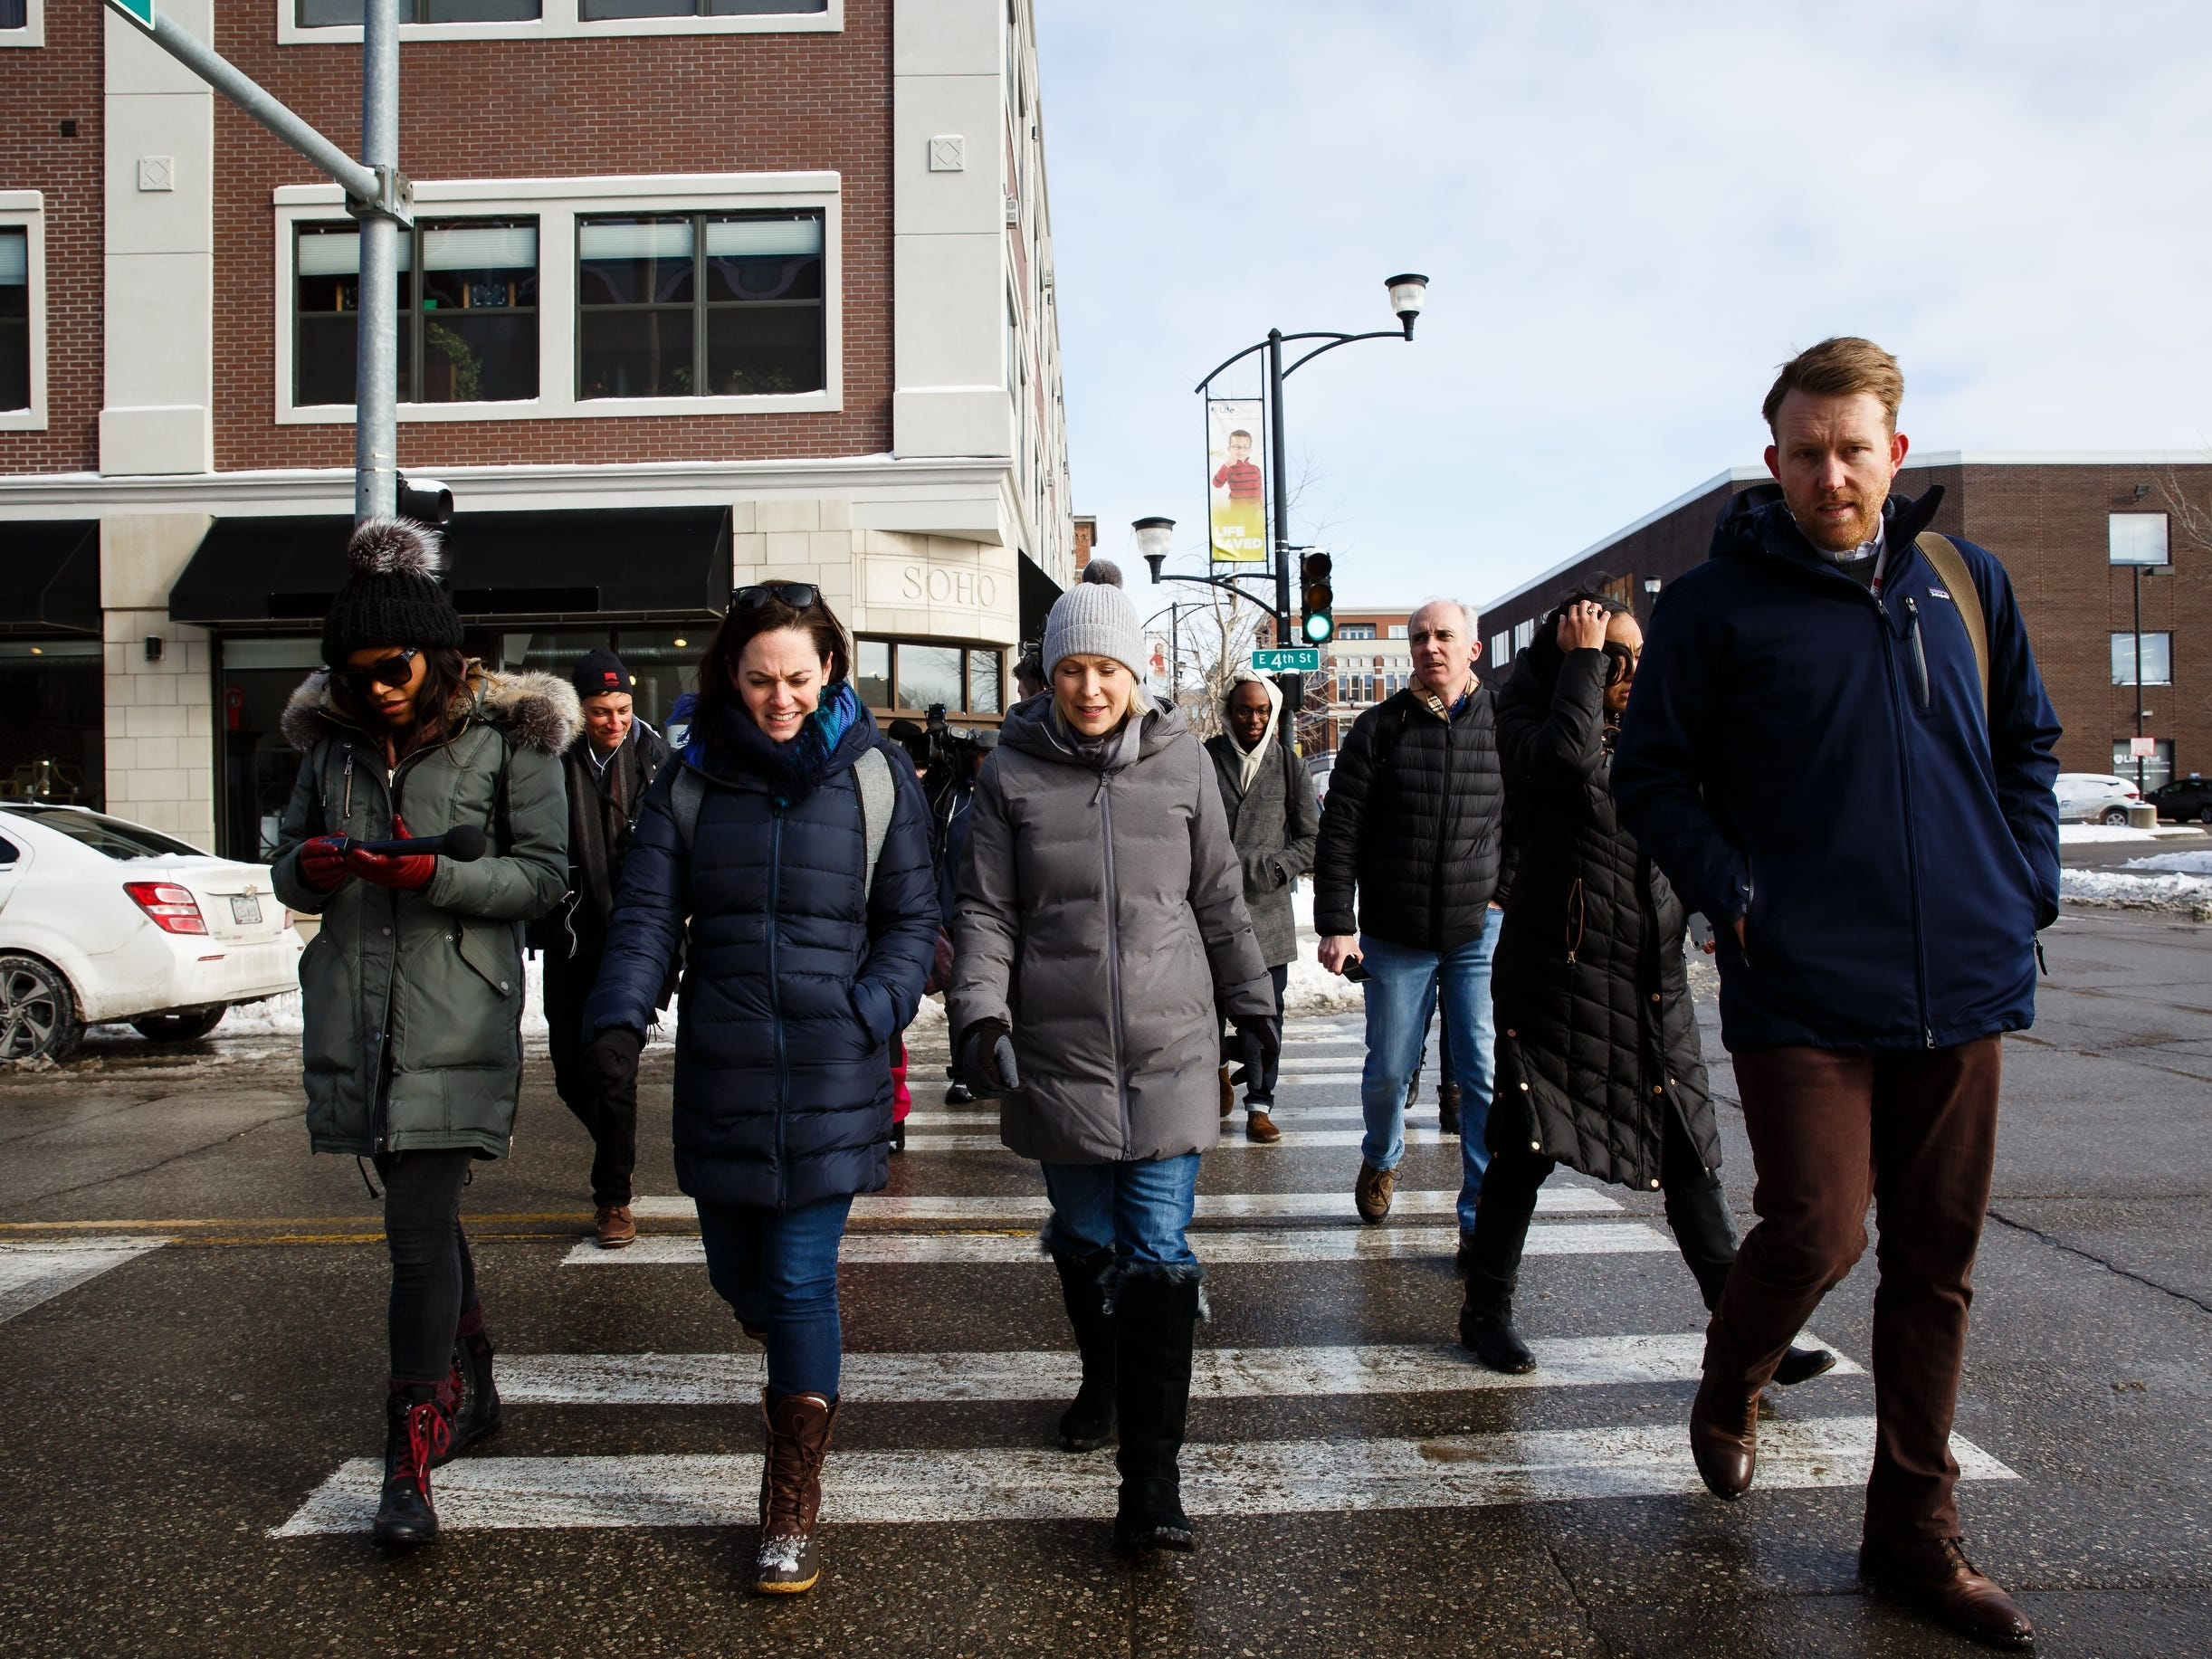 Sen. Kirsten Gillibrand of New York takes a walking tour of the East Village, talking to voters on Saturday, Jan. 19, 2019, in Des Moines.